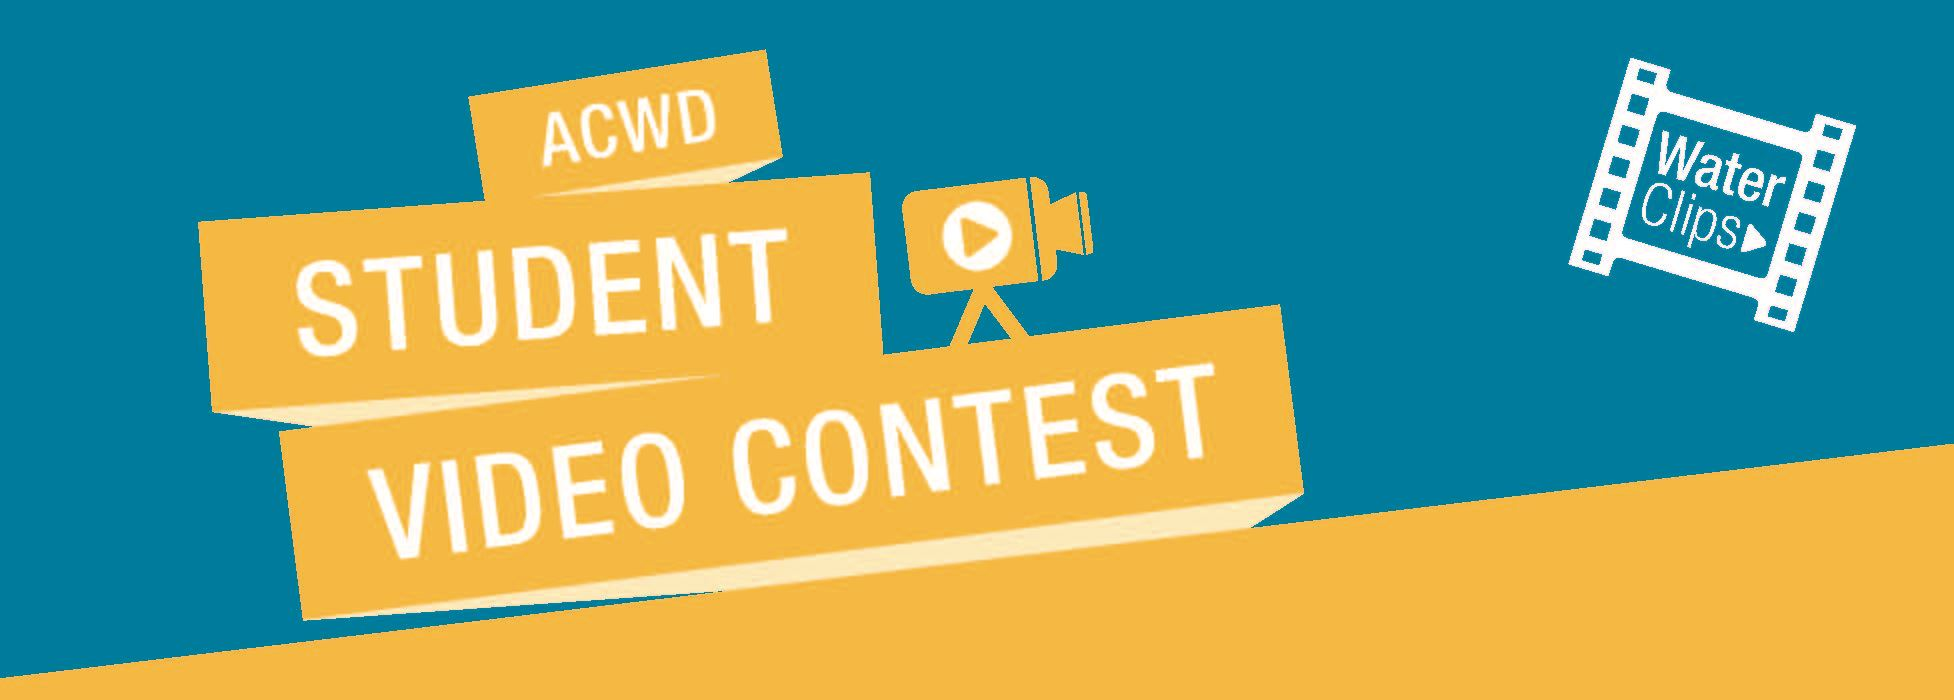 ACWD Student Video Contest